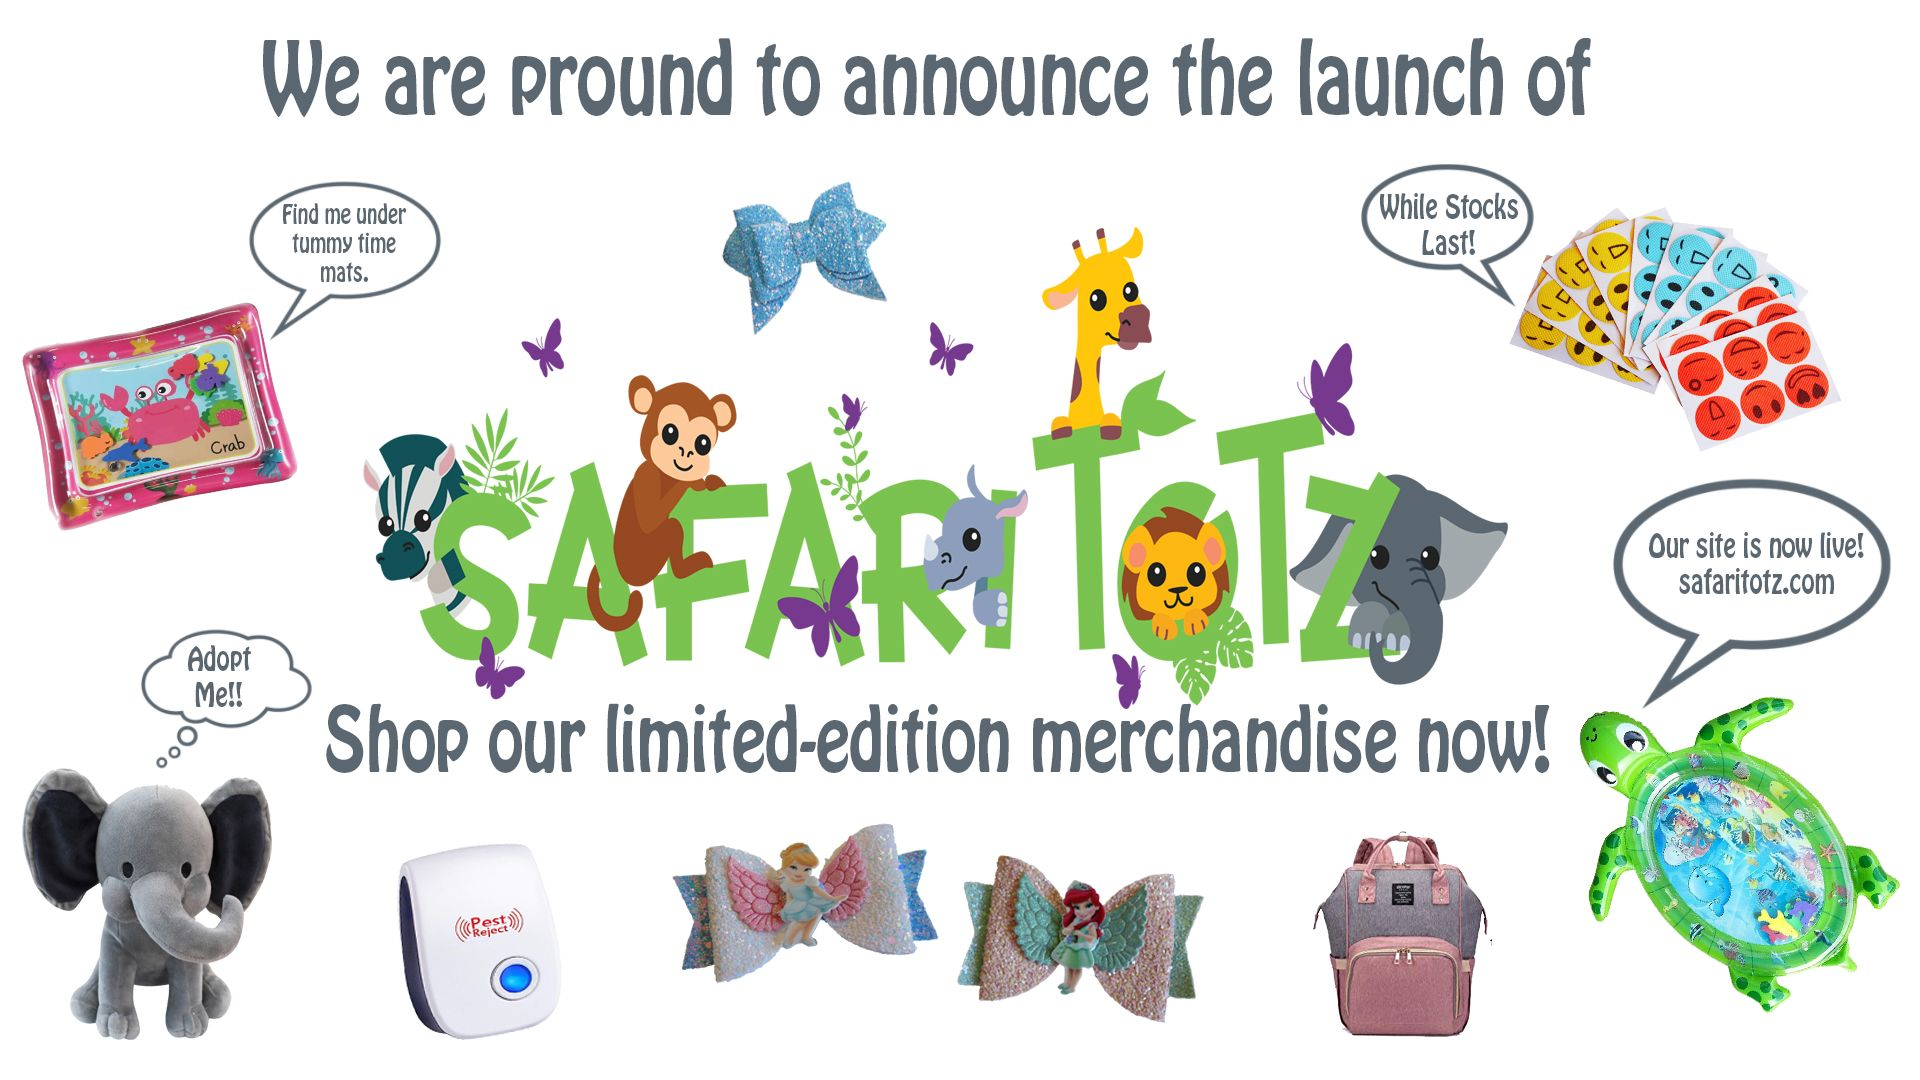 Please Check Out Our Website Safaritotz Com We Have Just Gone Live And Need Your Support Please Share Product Launch Supportive